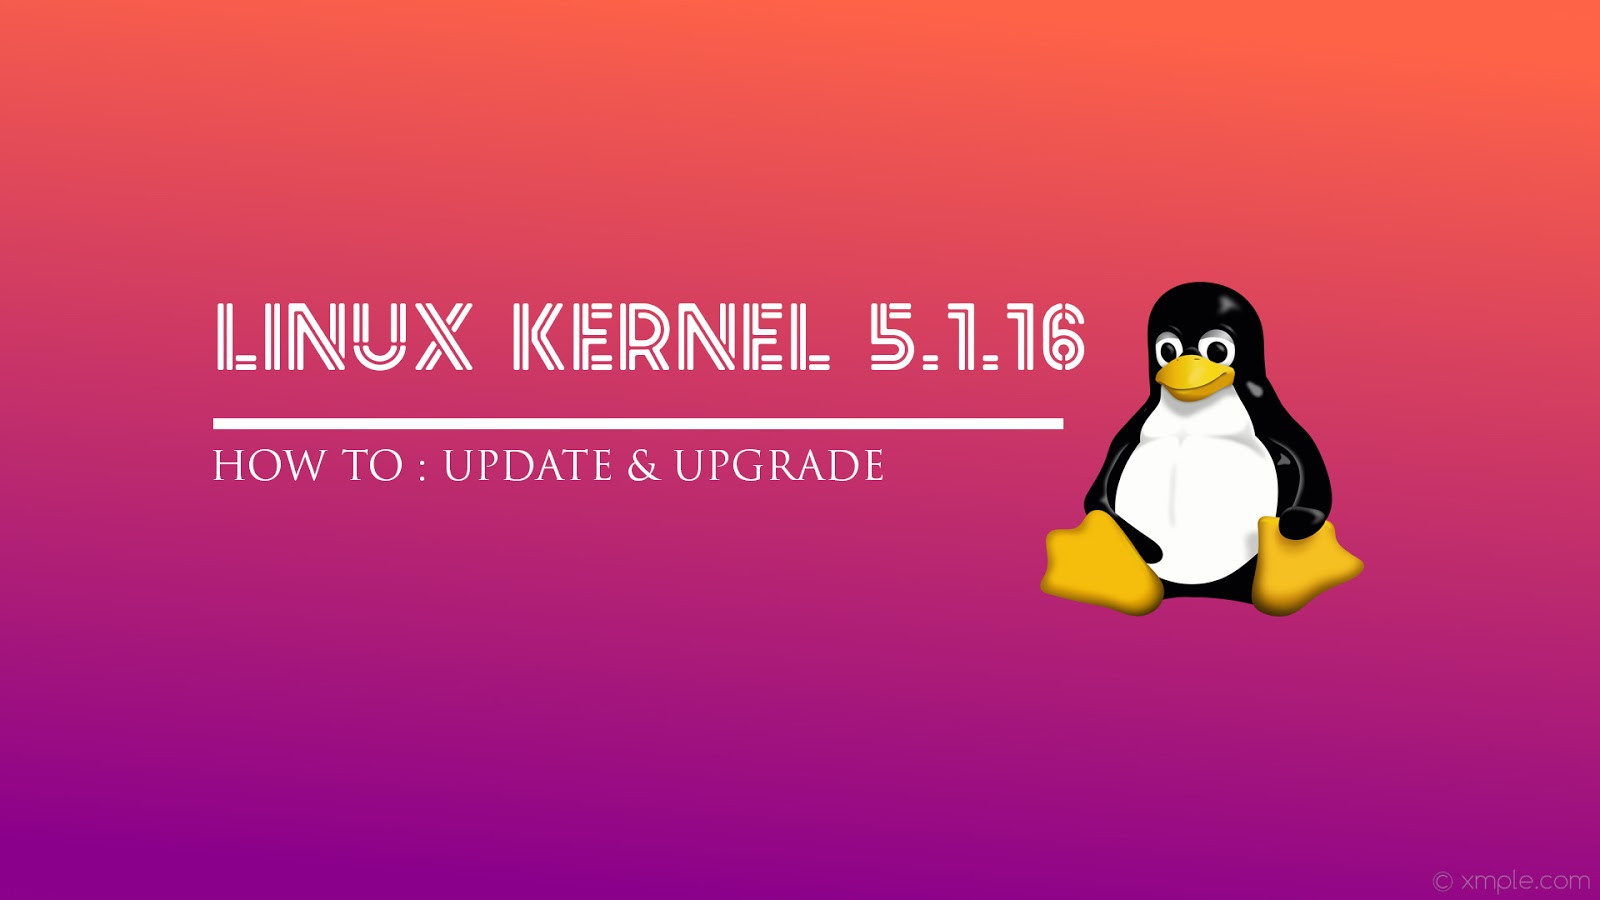 How to install Linux Kernel 5 1 16 stable on Ubuntu and